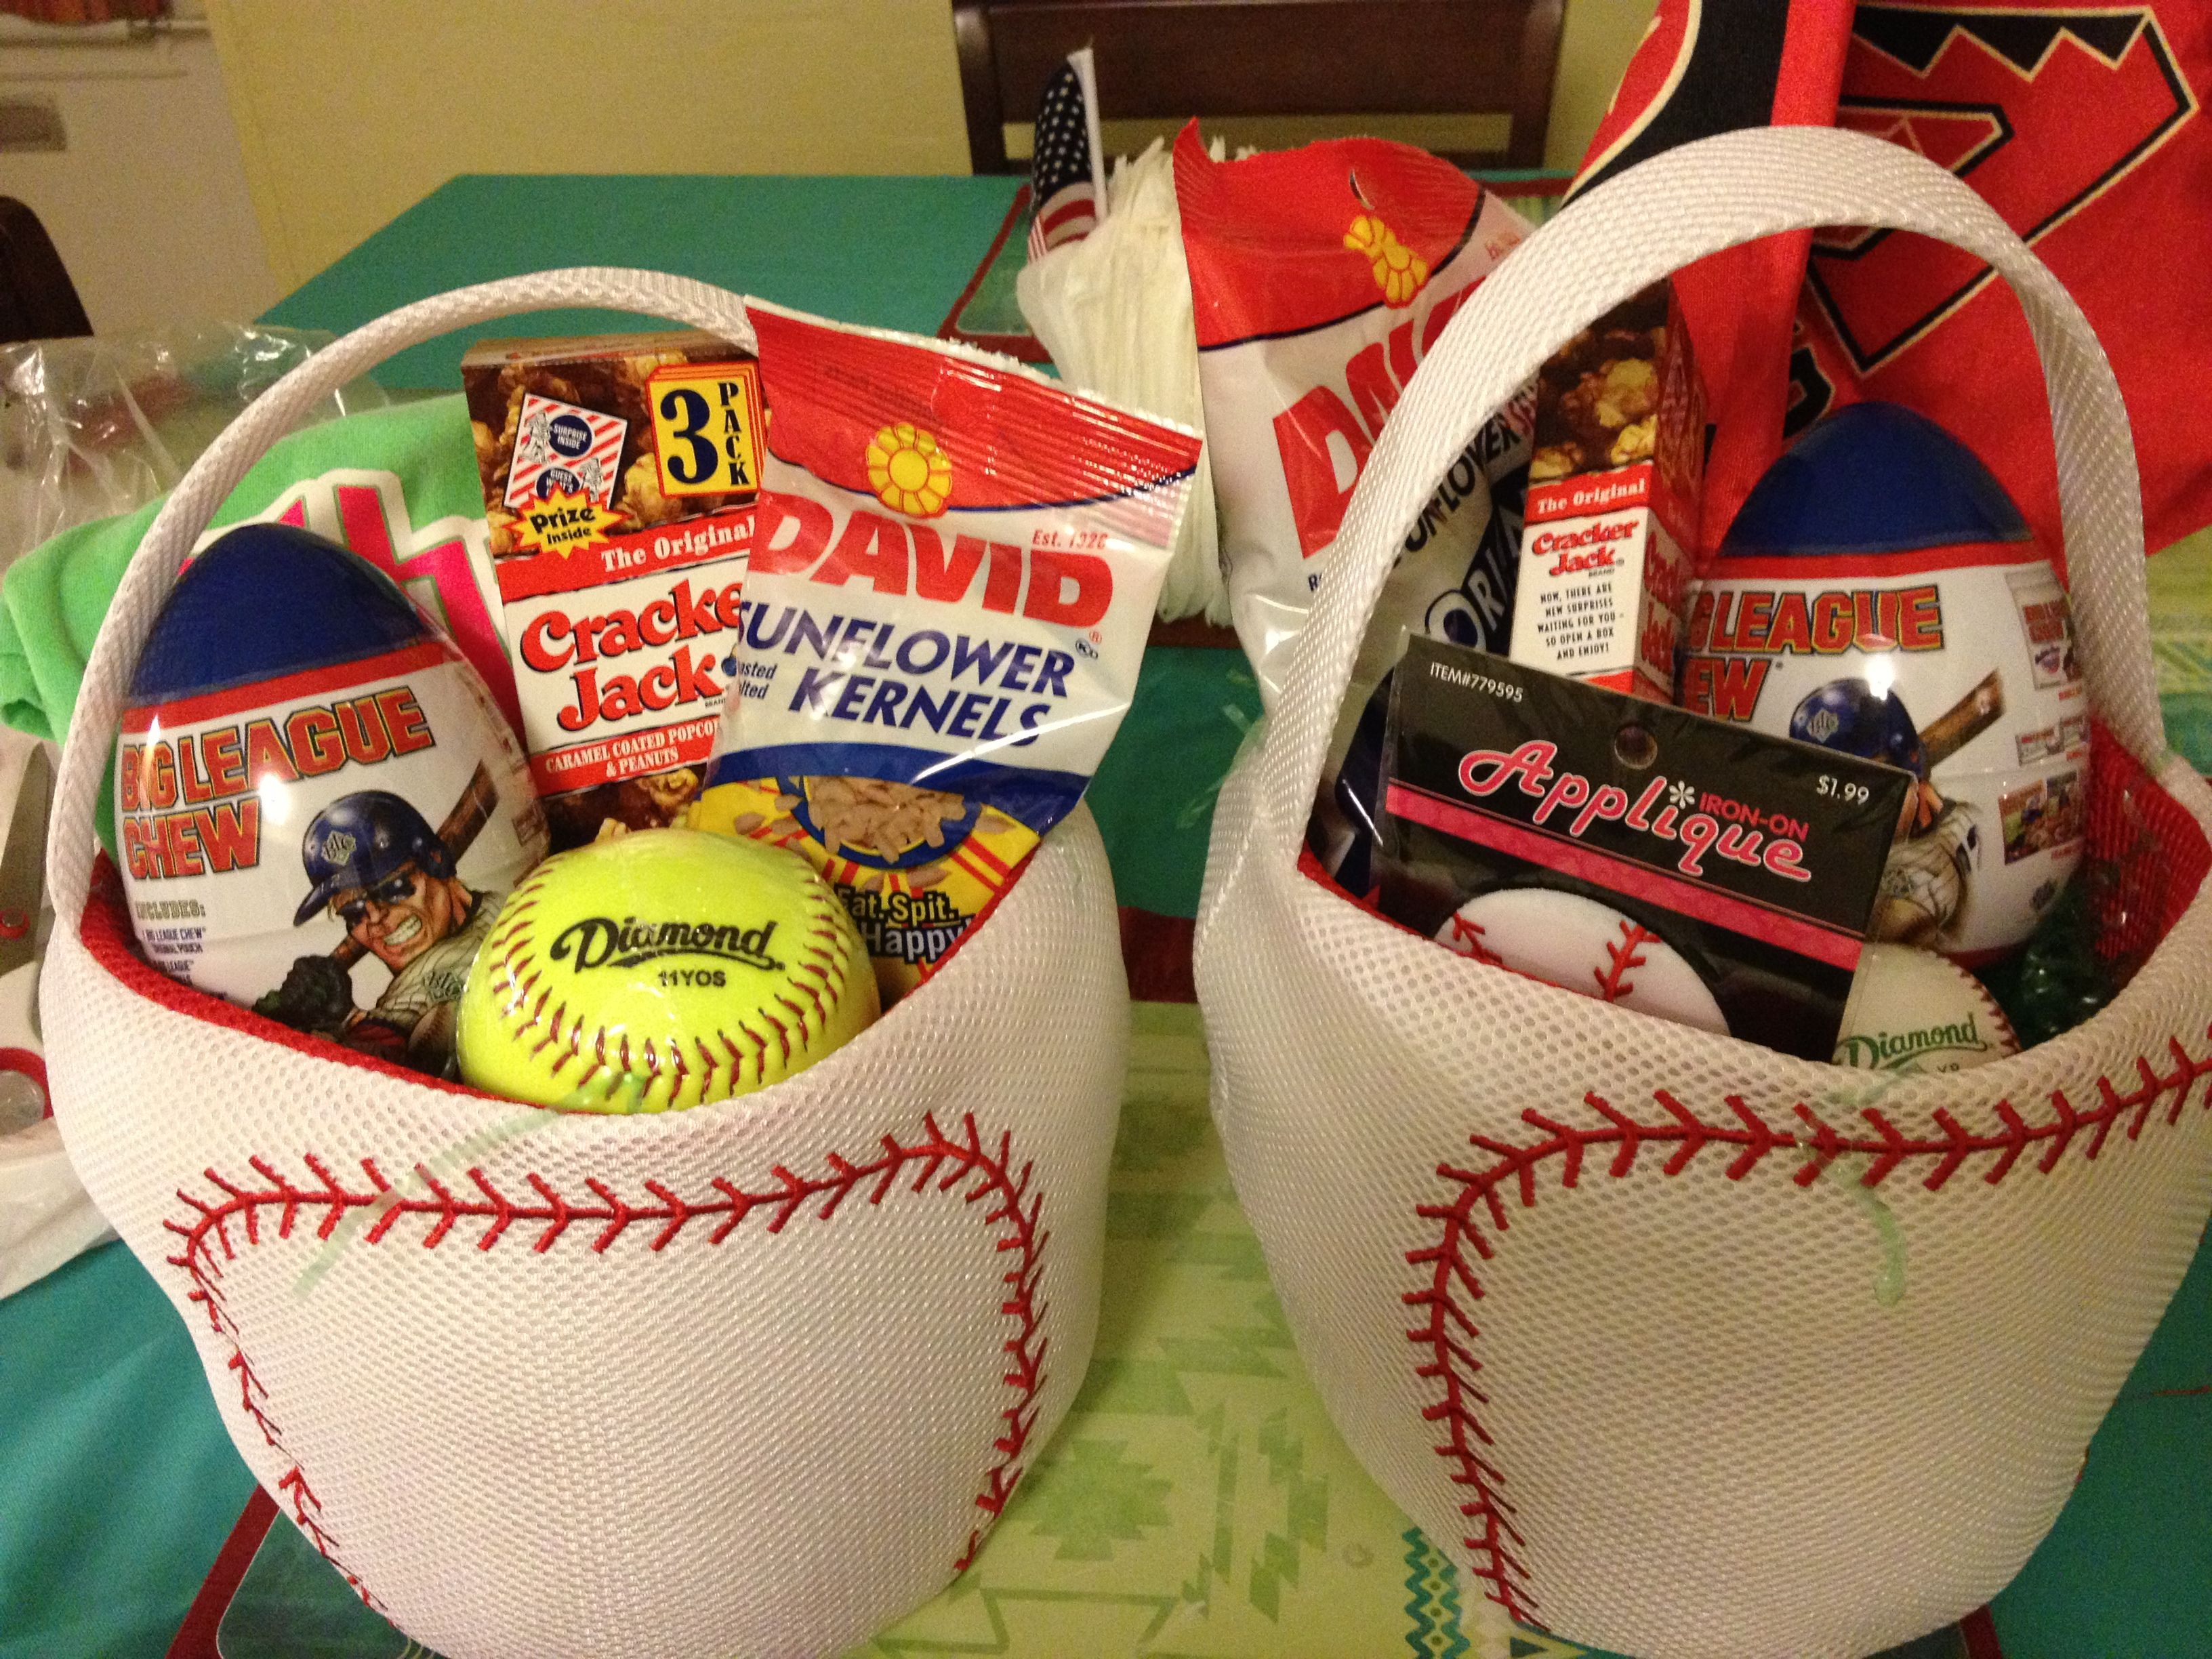 Baseballsoftball easter baskets baseballsoftball pinterest baseballsoftball easter baskets easter basket ideaseaster negle Image collections